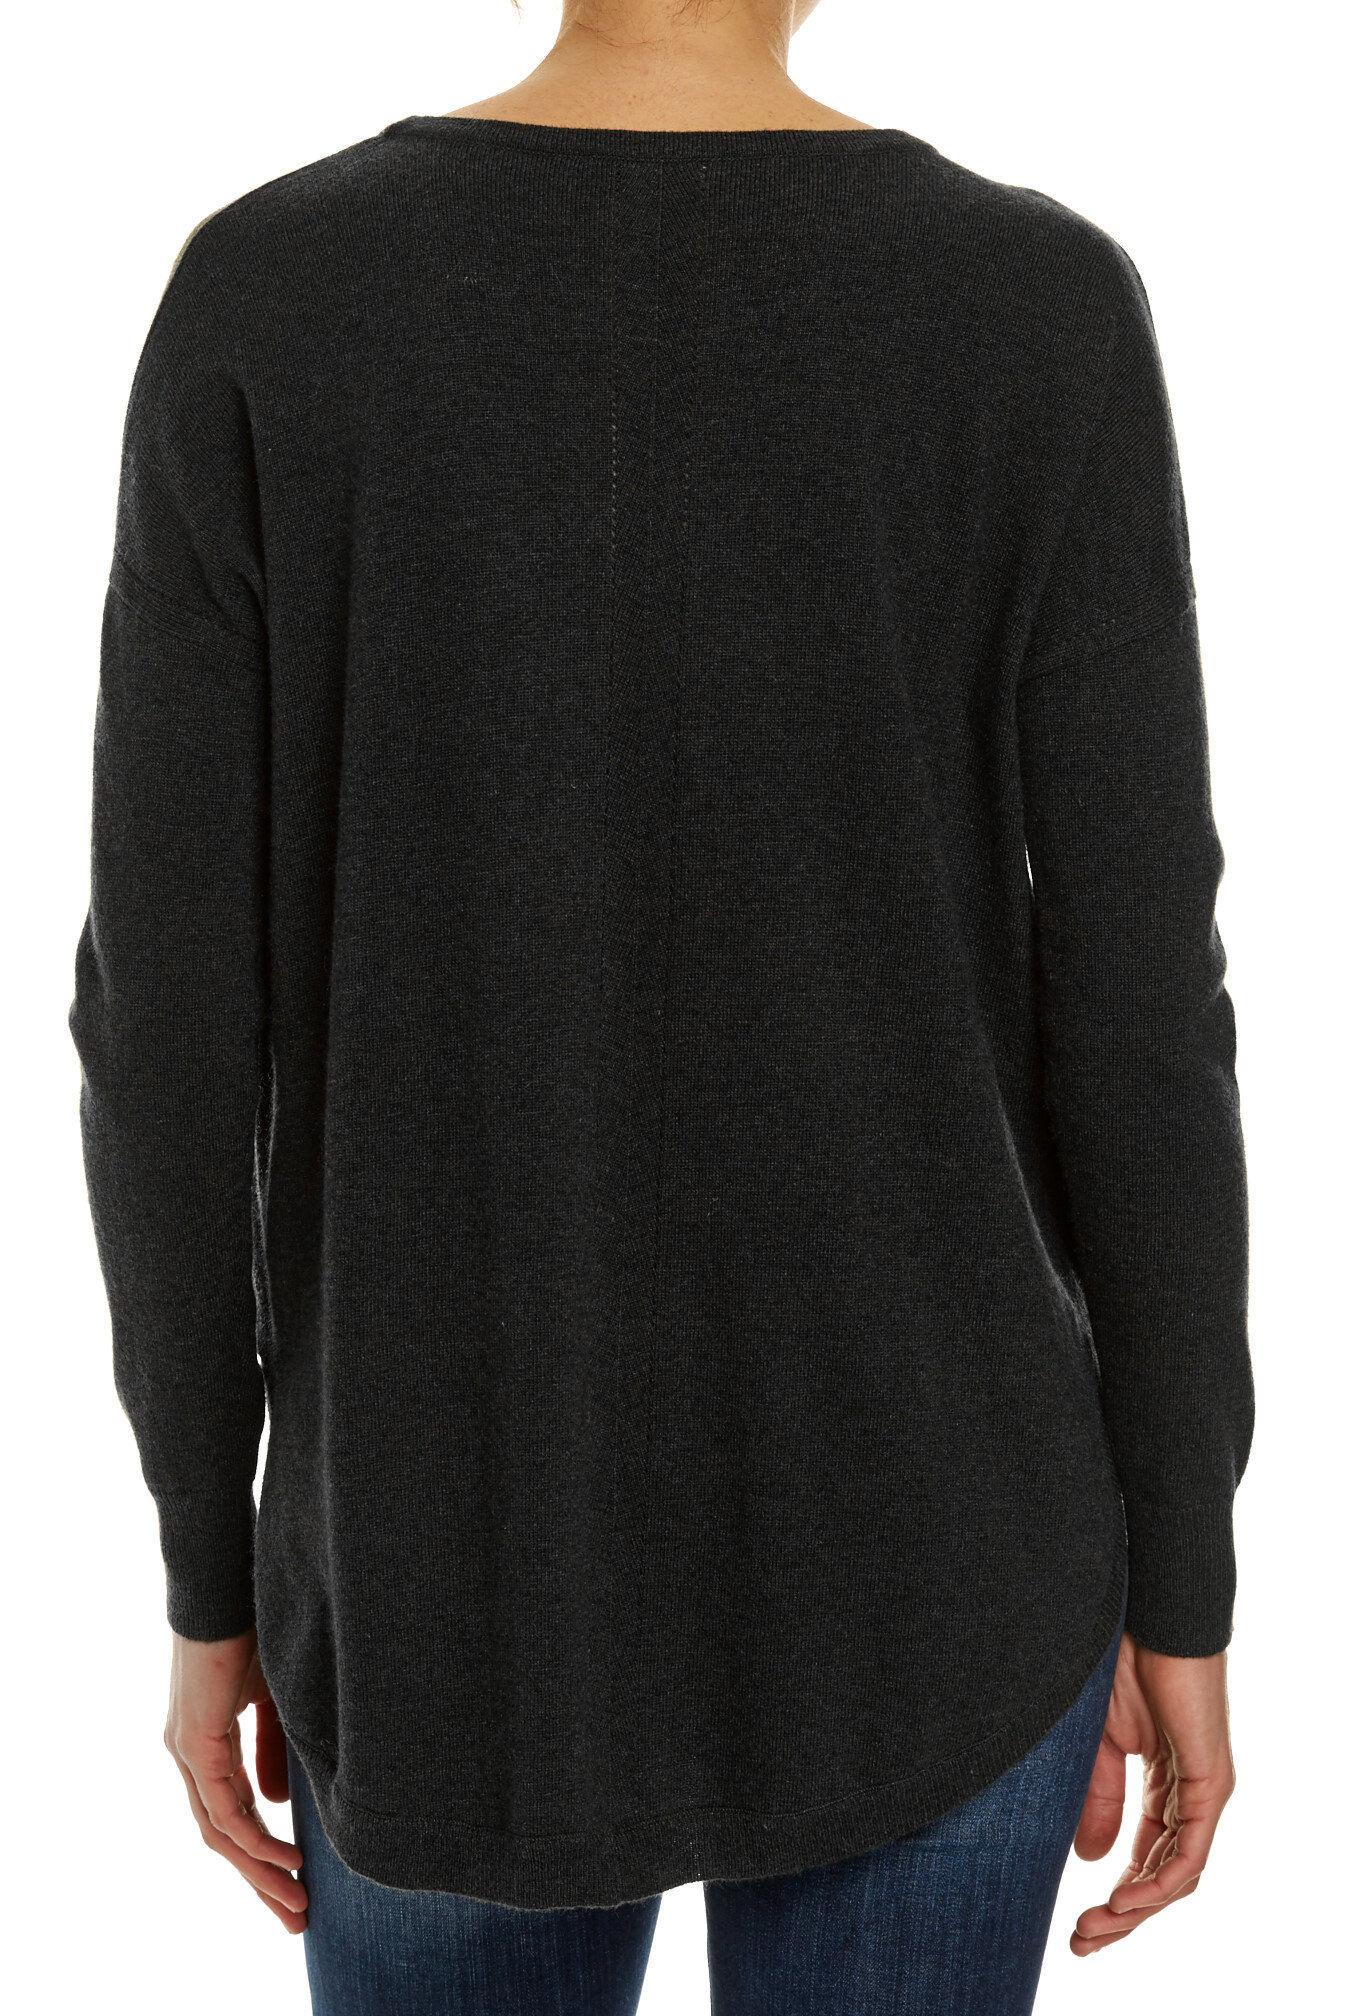 NEW-JAG-WOMENS-Curved-Hem-Knit-Jumpers-Cardigans